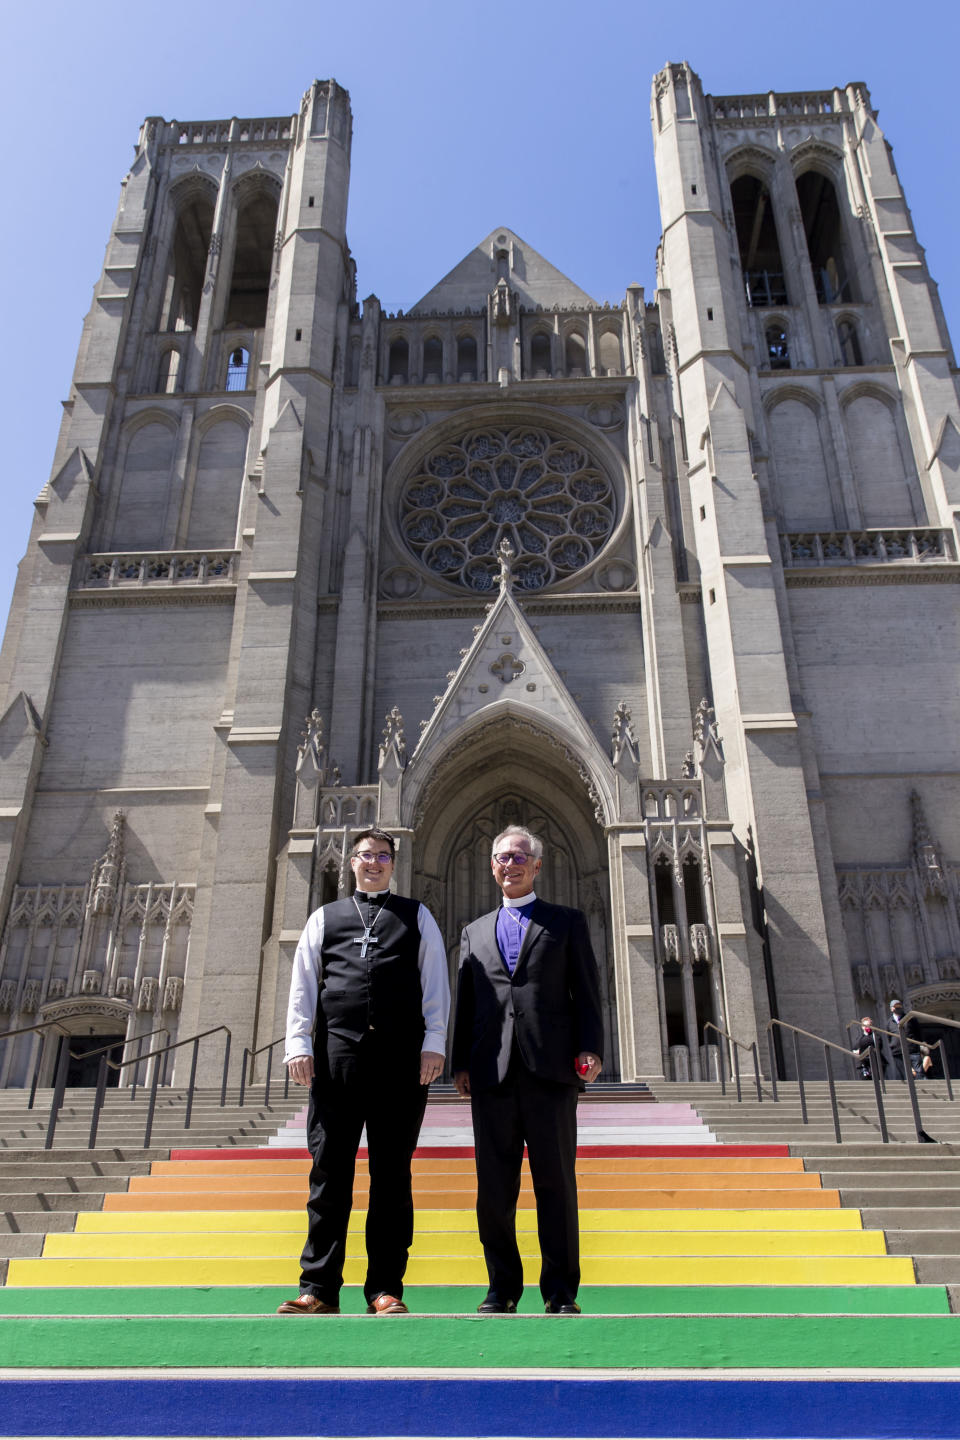 Bishop Megan Rohrer, left, and Bishop Marc Andrus stand on the rainbow steps before Bishop Rohrer's installation ceremony at Grace Cathedral in San Francisco, Saturday, Sept. 11, 2021. Rohrer is the first openly transgender person elected as bishop in the Evangelical Lutheran Church of America. (AP Photo/John Hefti)